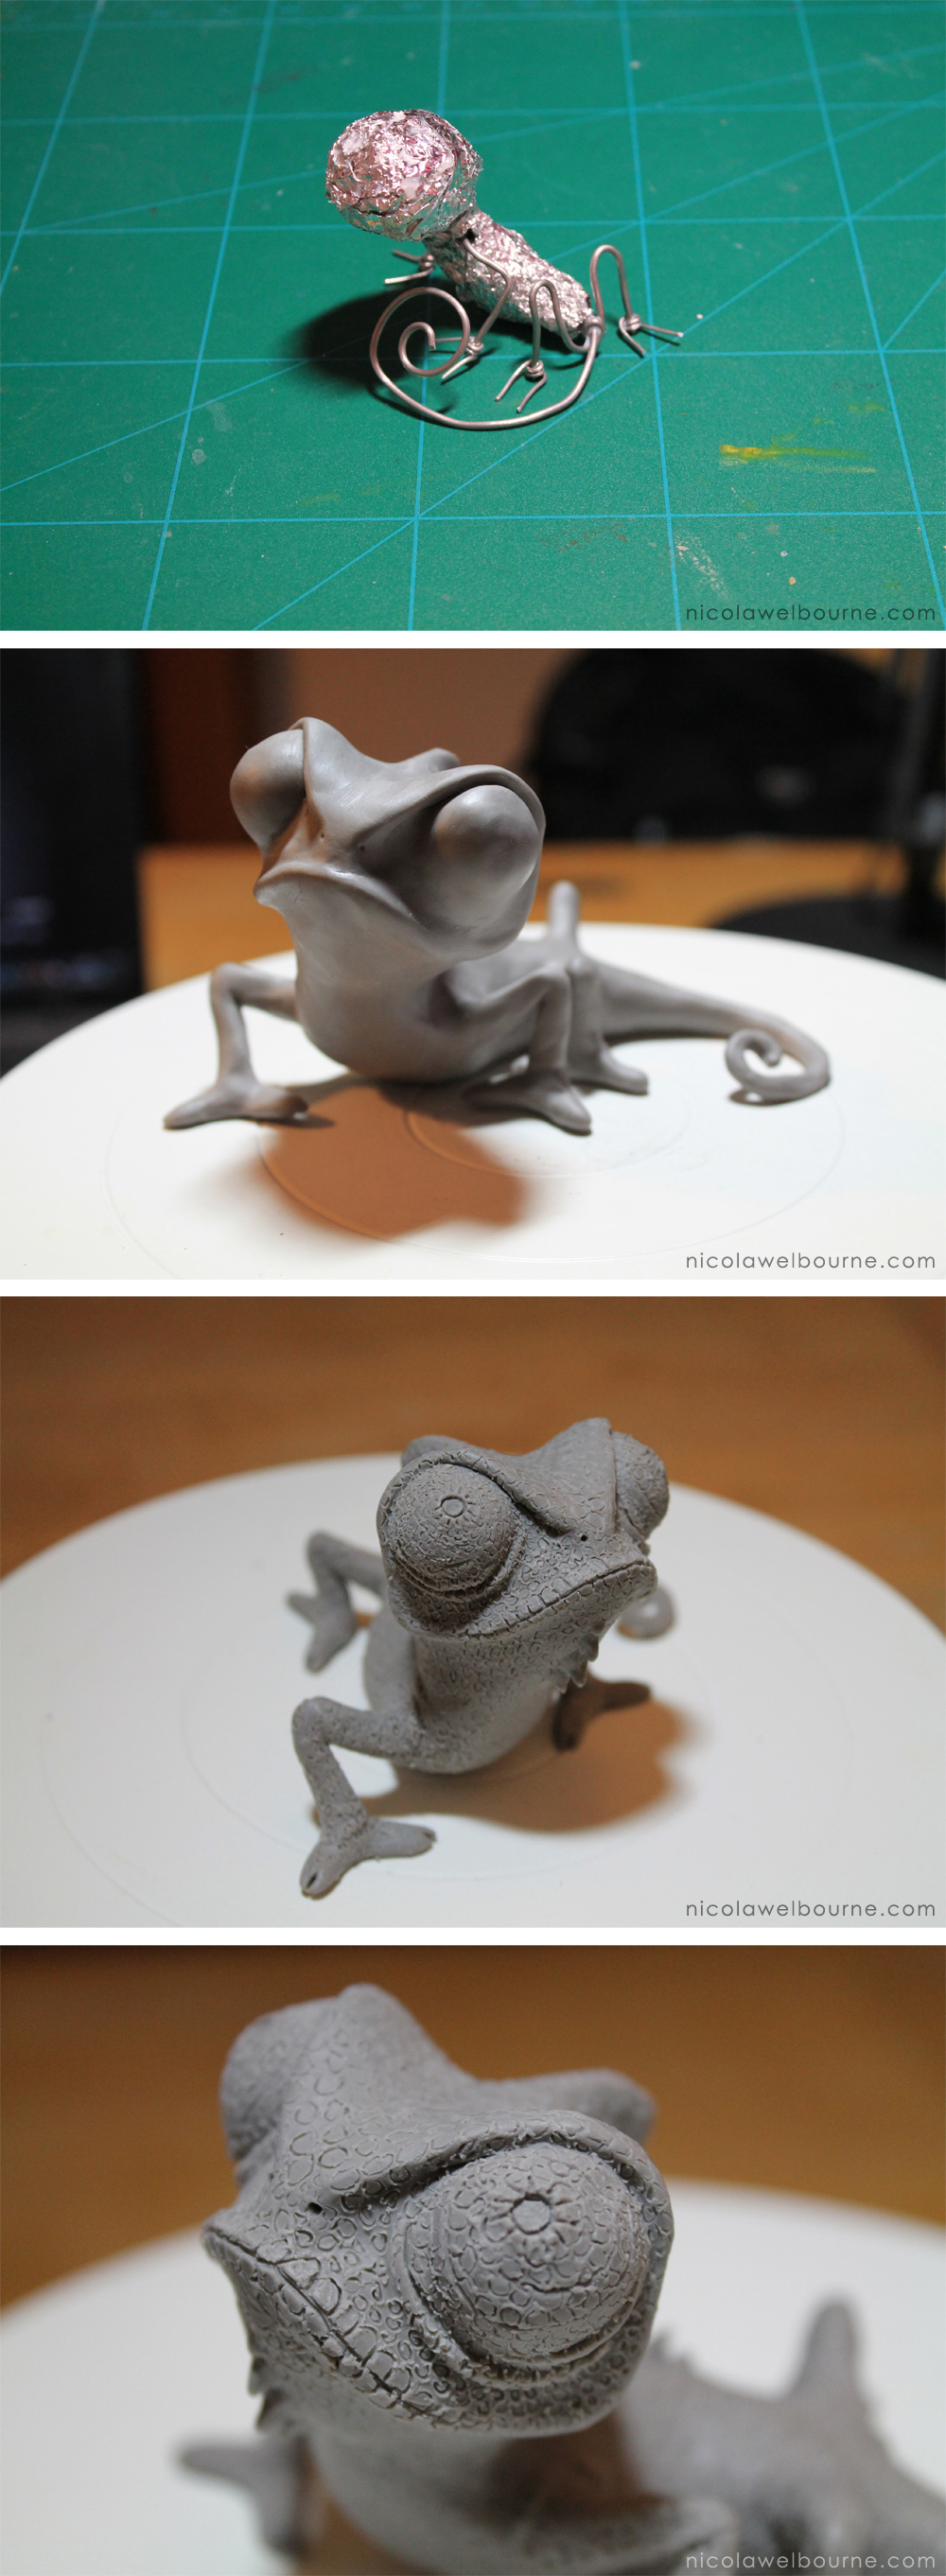 Chameleon Model Making